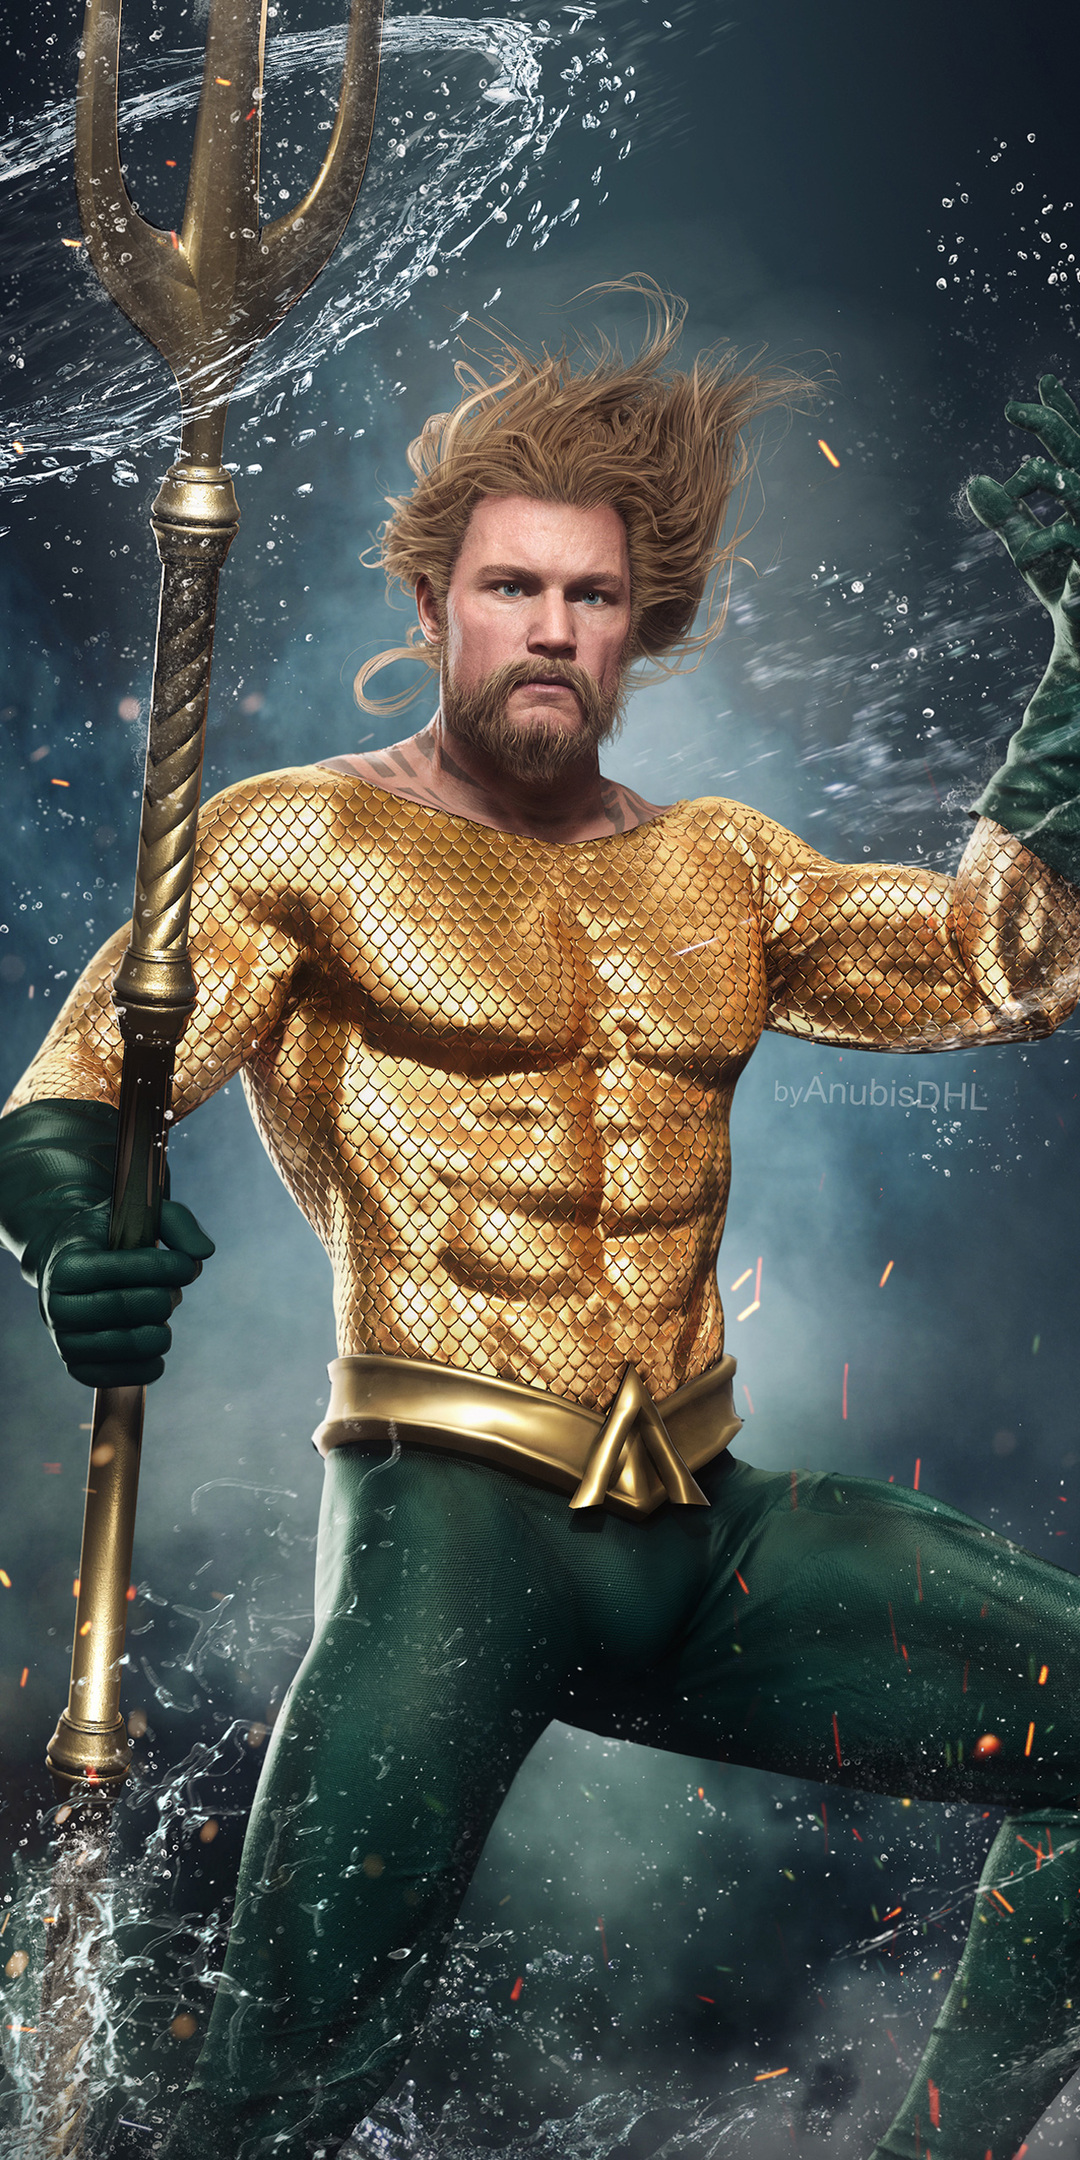 aquaman-digital-artwork-0f.jpg